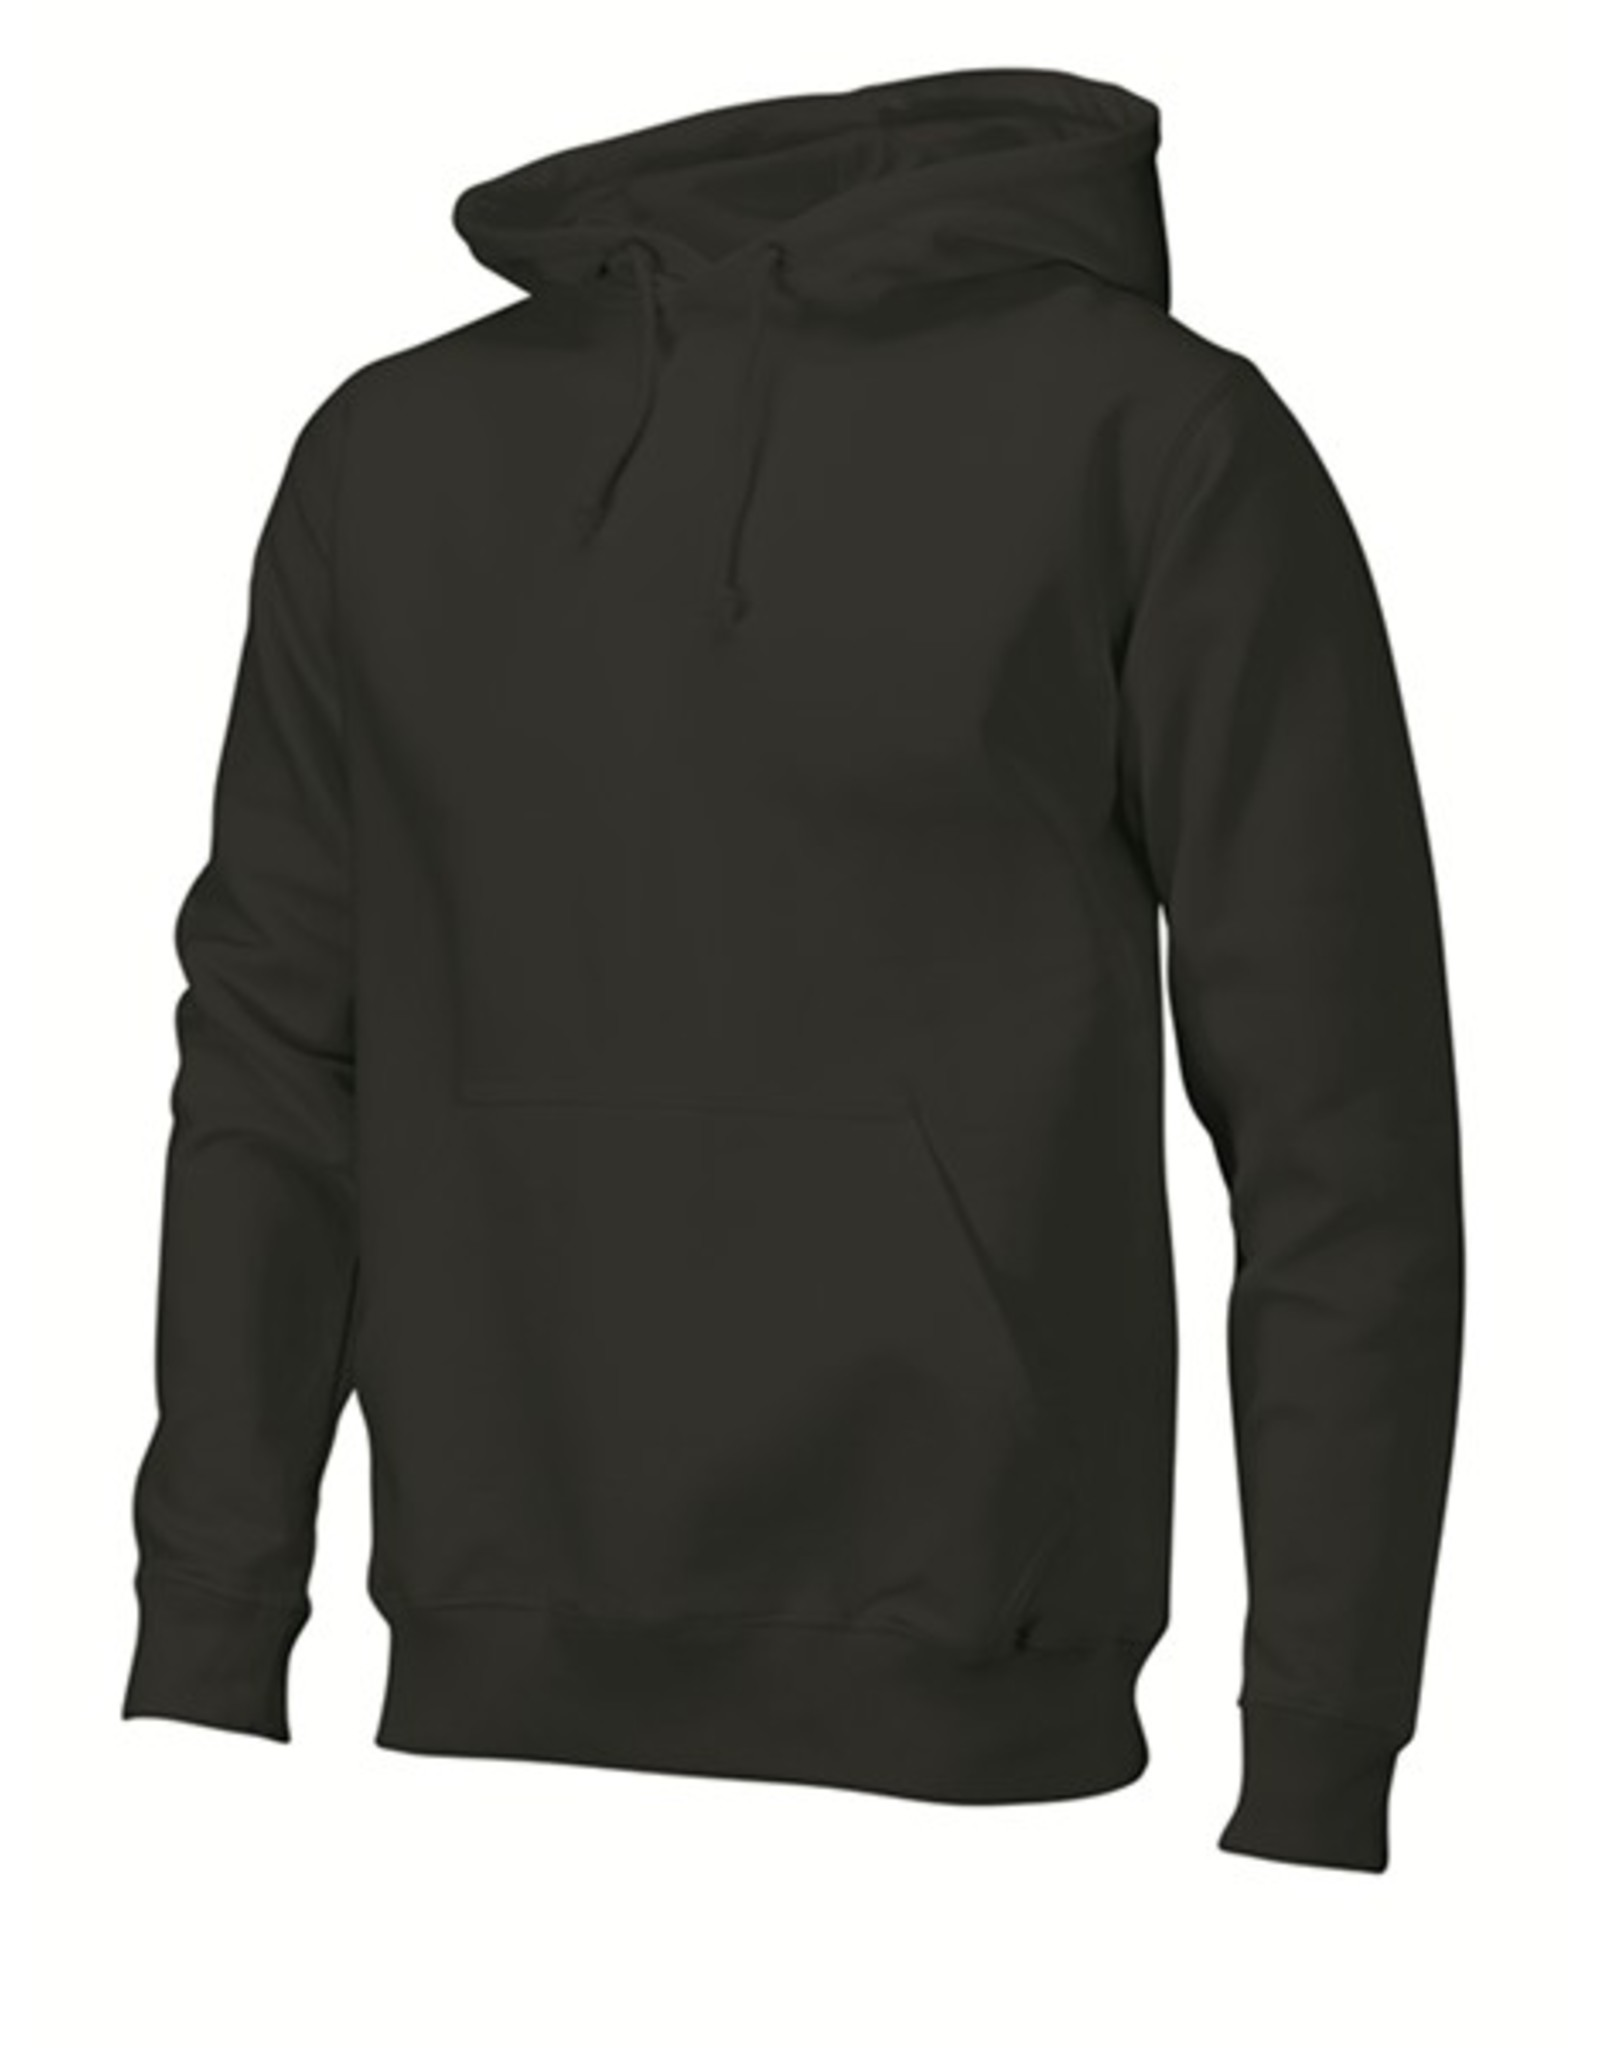 Tricorp Hooded sweater HS300 zwart